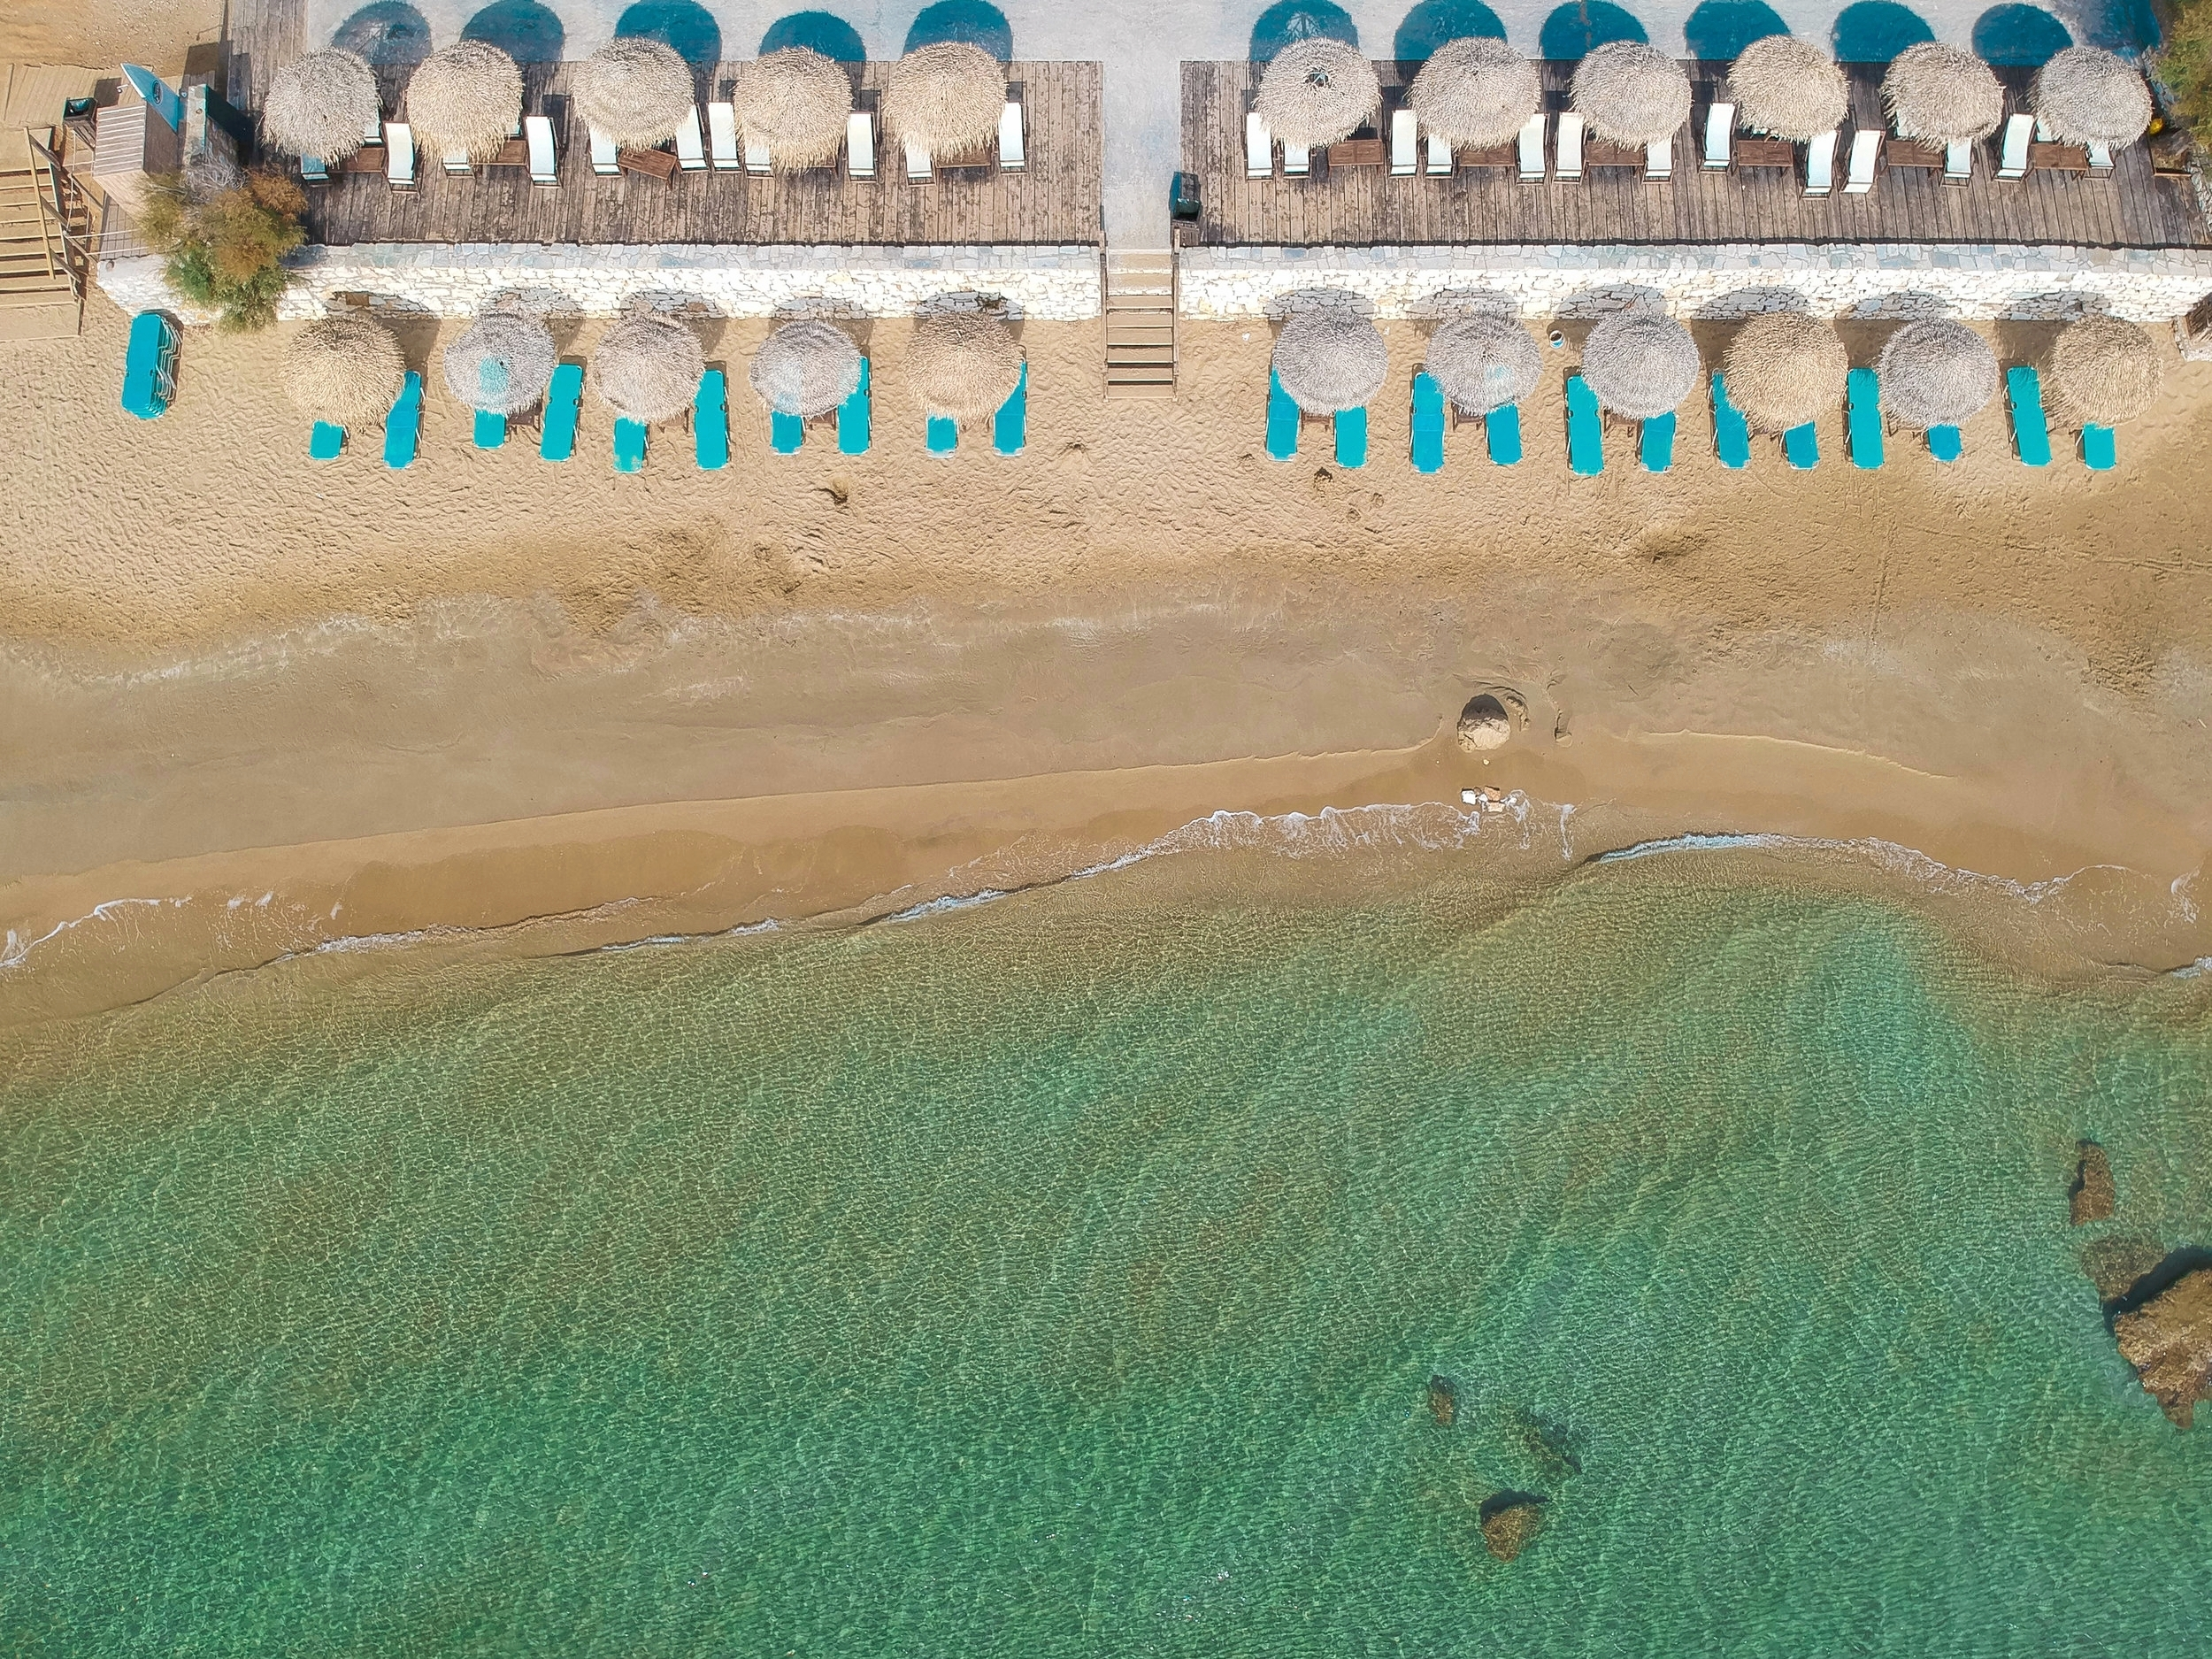 curio.trips.greece.paros.beach.umbrellas.sea.drone.landscape-2.jpg